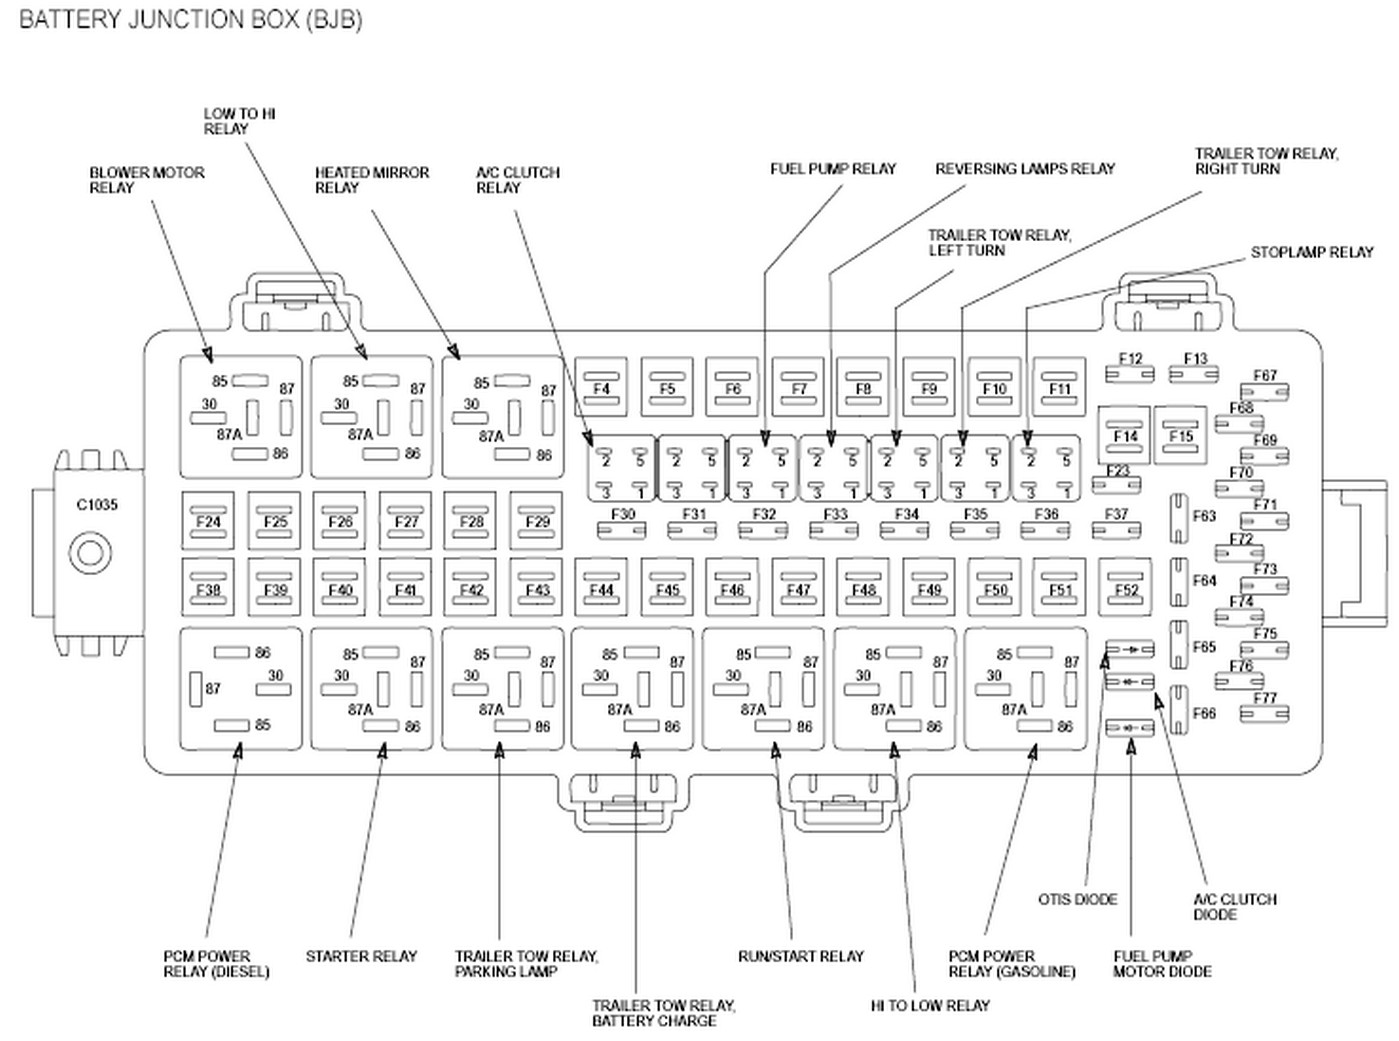 2011 ford f250 fuse box diagram Zoinyhu 2012 f250 fuse box location 2009 ford fusion fuse box diagram 2010 F350 at readyjetset.co